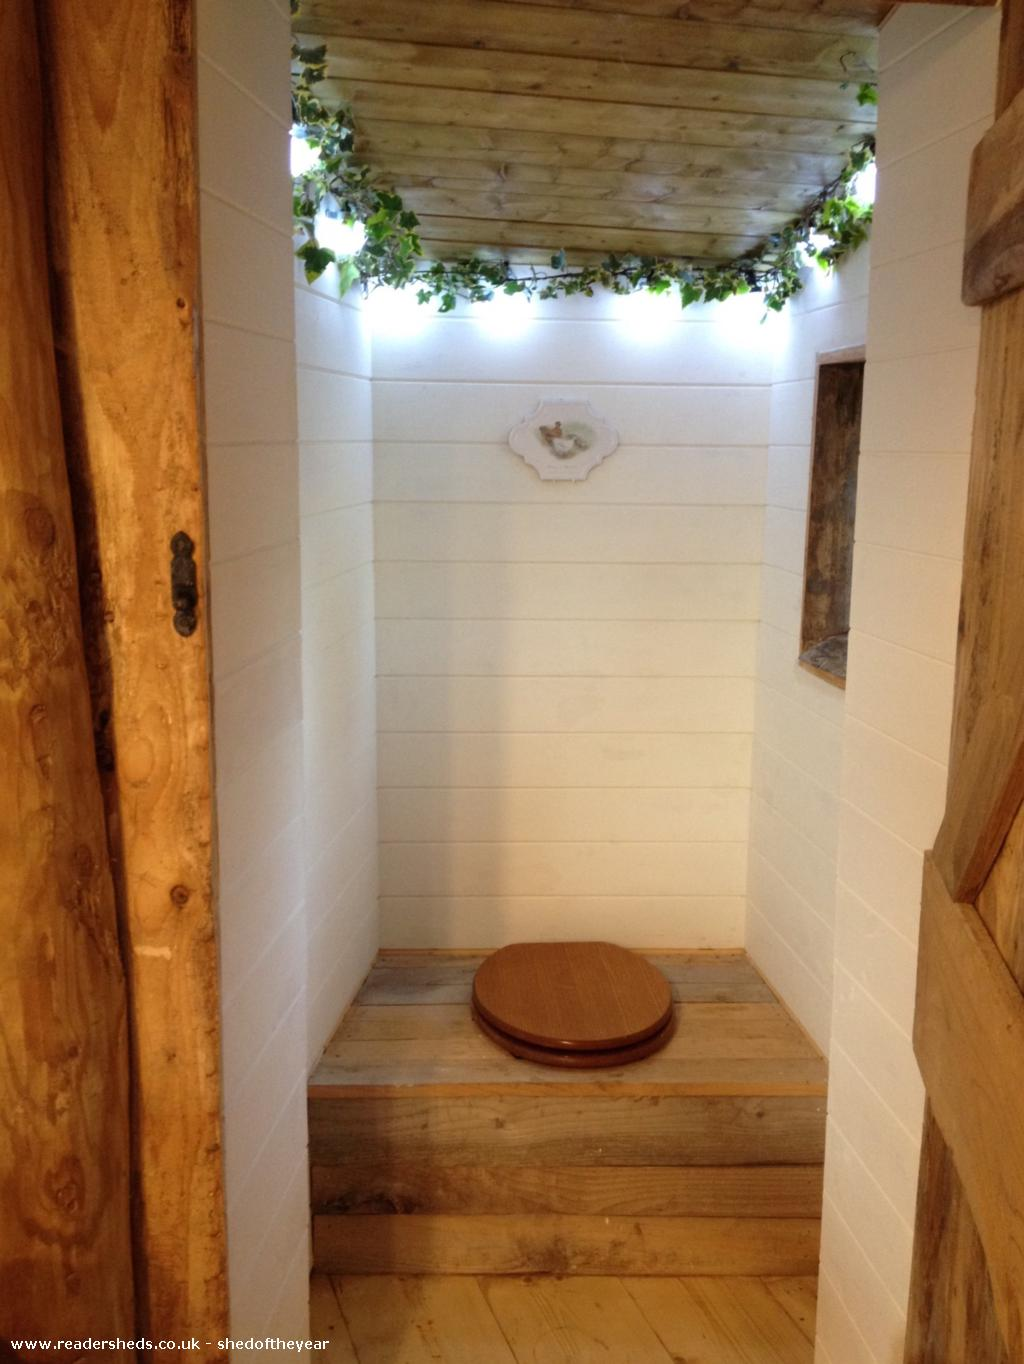 Photo of Hobbit House, entry to Shed of the year-The Loo